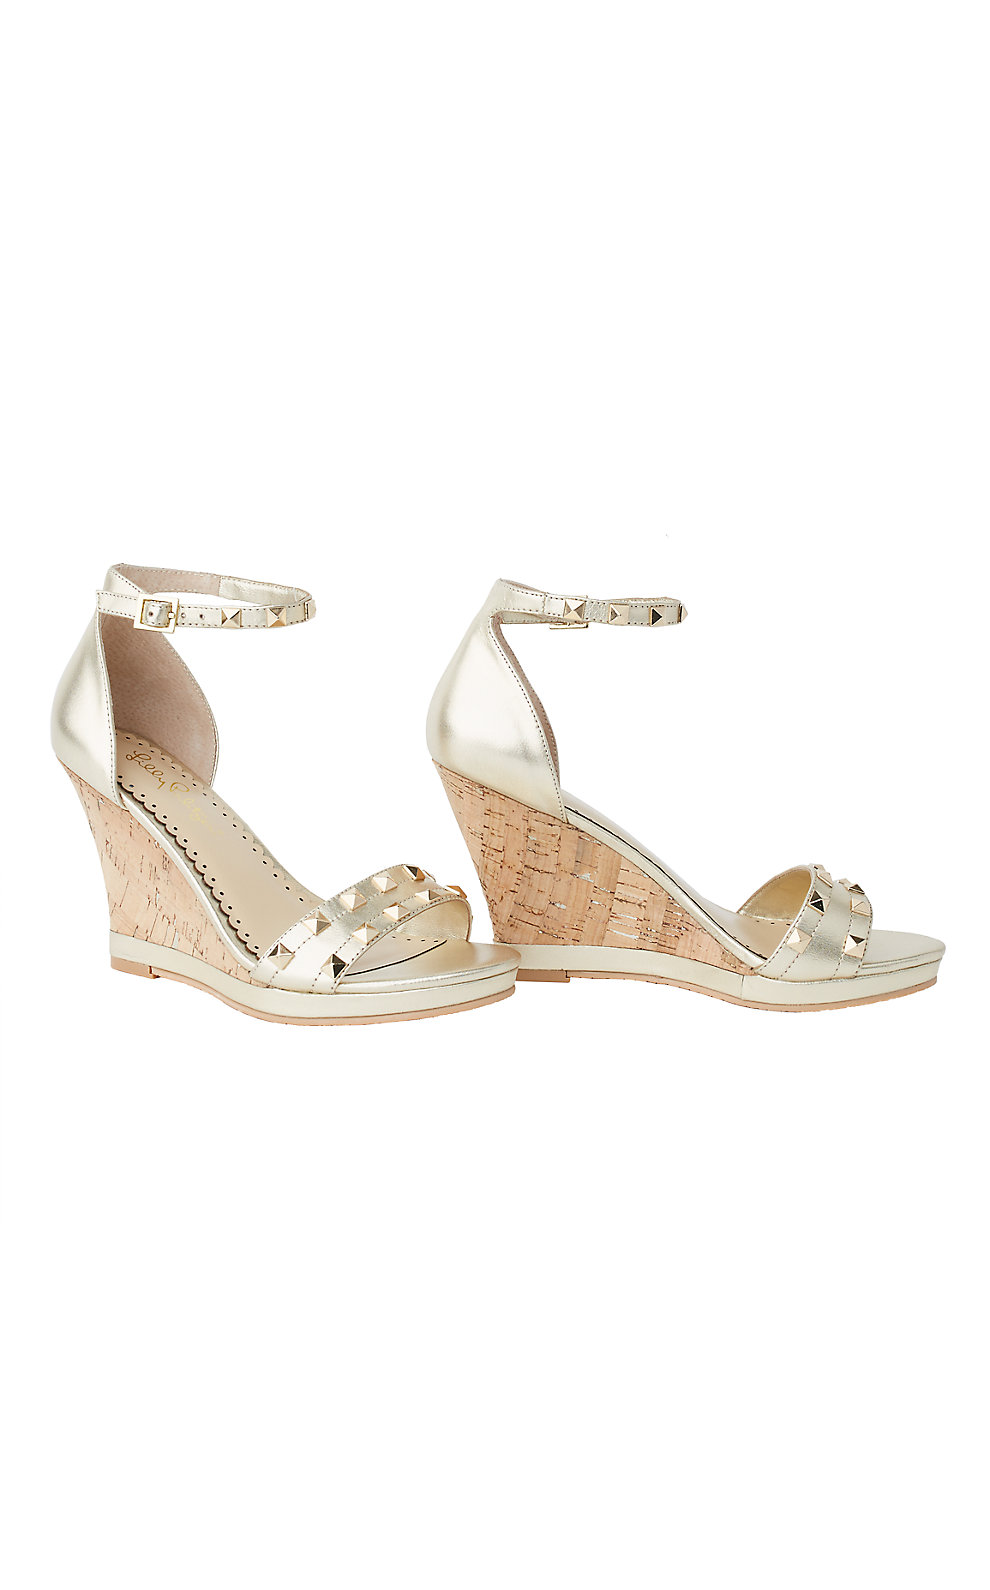 Lilly Pulitzer Sydney Wedge